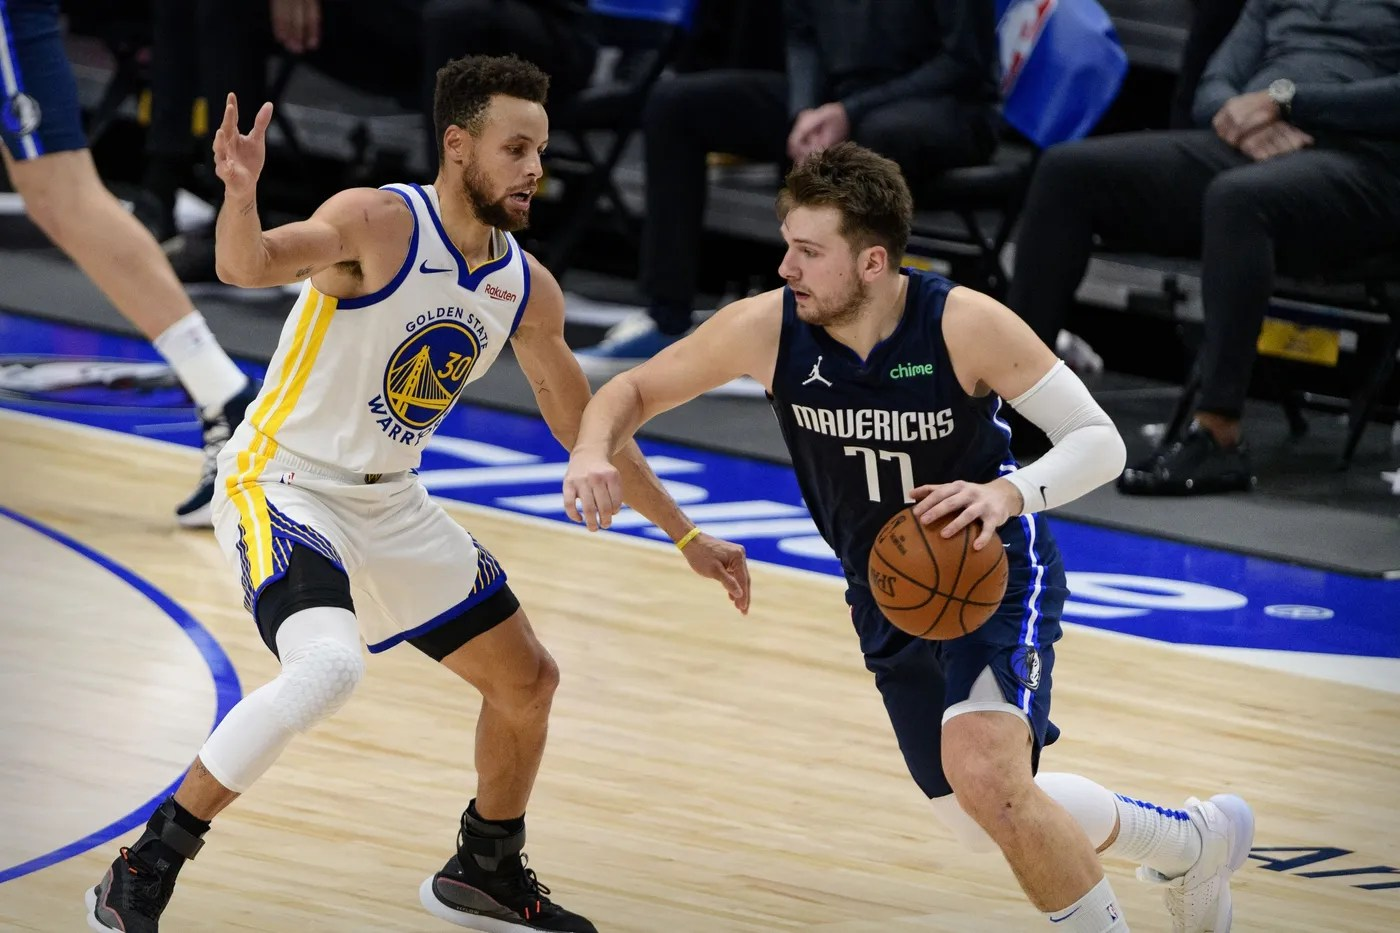 Feb 6, 2021; Dallas, Texas, USA; Golden State Warriors guard Stephen Curry (30) and Dallas Mavericks guard Luka Doncic (77) in action during the game between the Dallas Mavericks and the Golden State Warriors at the American Airlines Center.